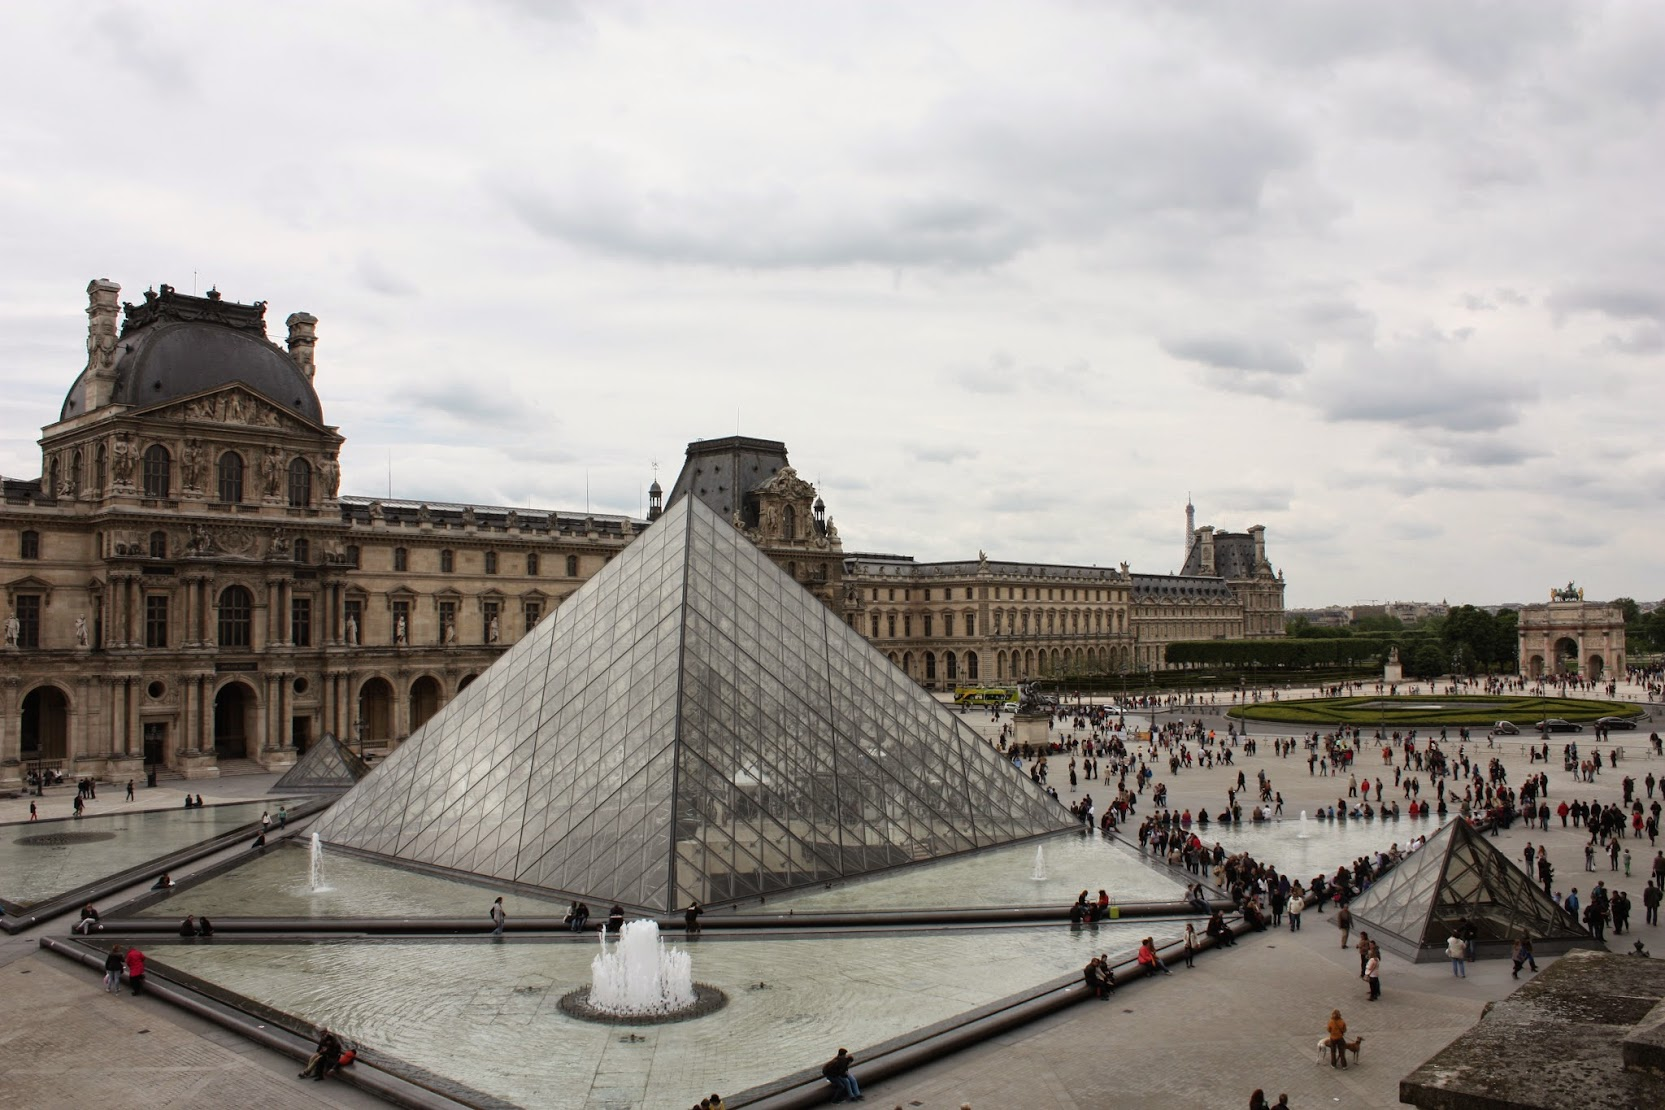 The museum area seen from inside the Louvre